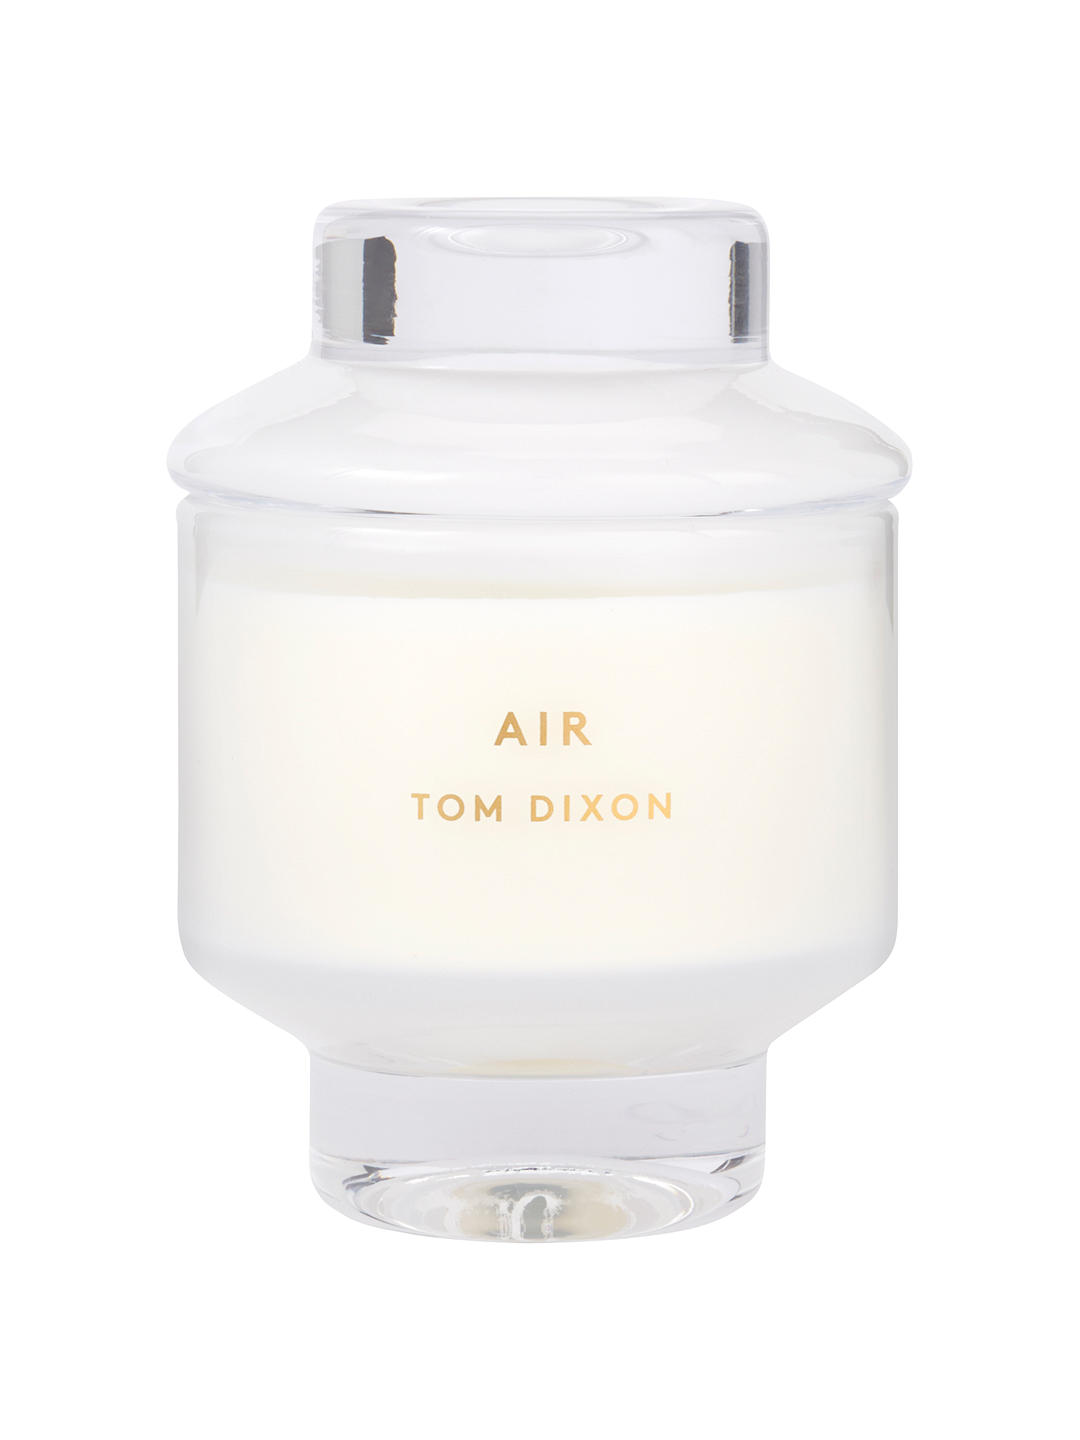 Tom Dixon 'Air' Candle-Meghan Markle